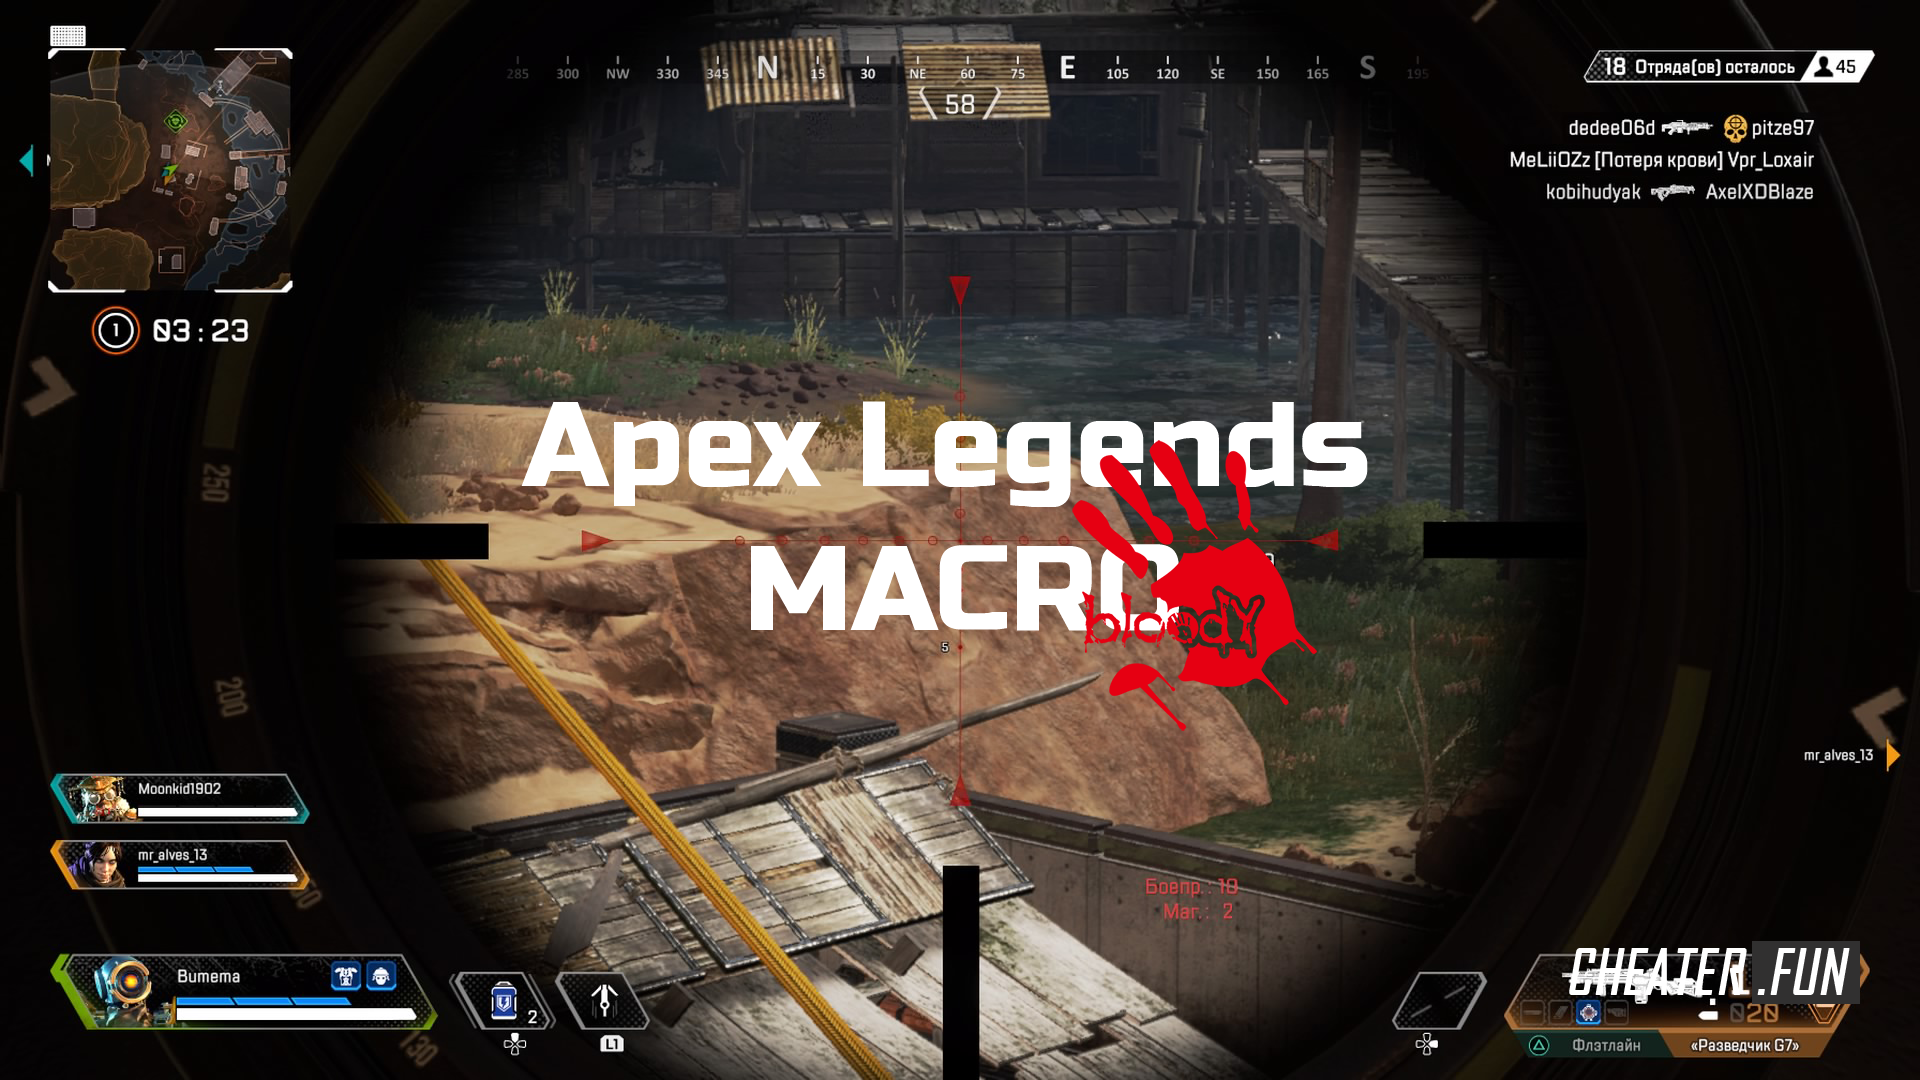 Download cheat for Apex Legends MACRO - Bloody free